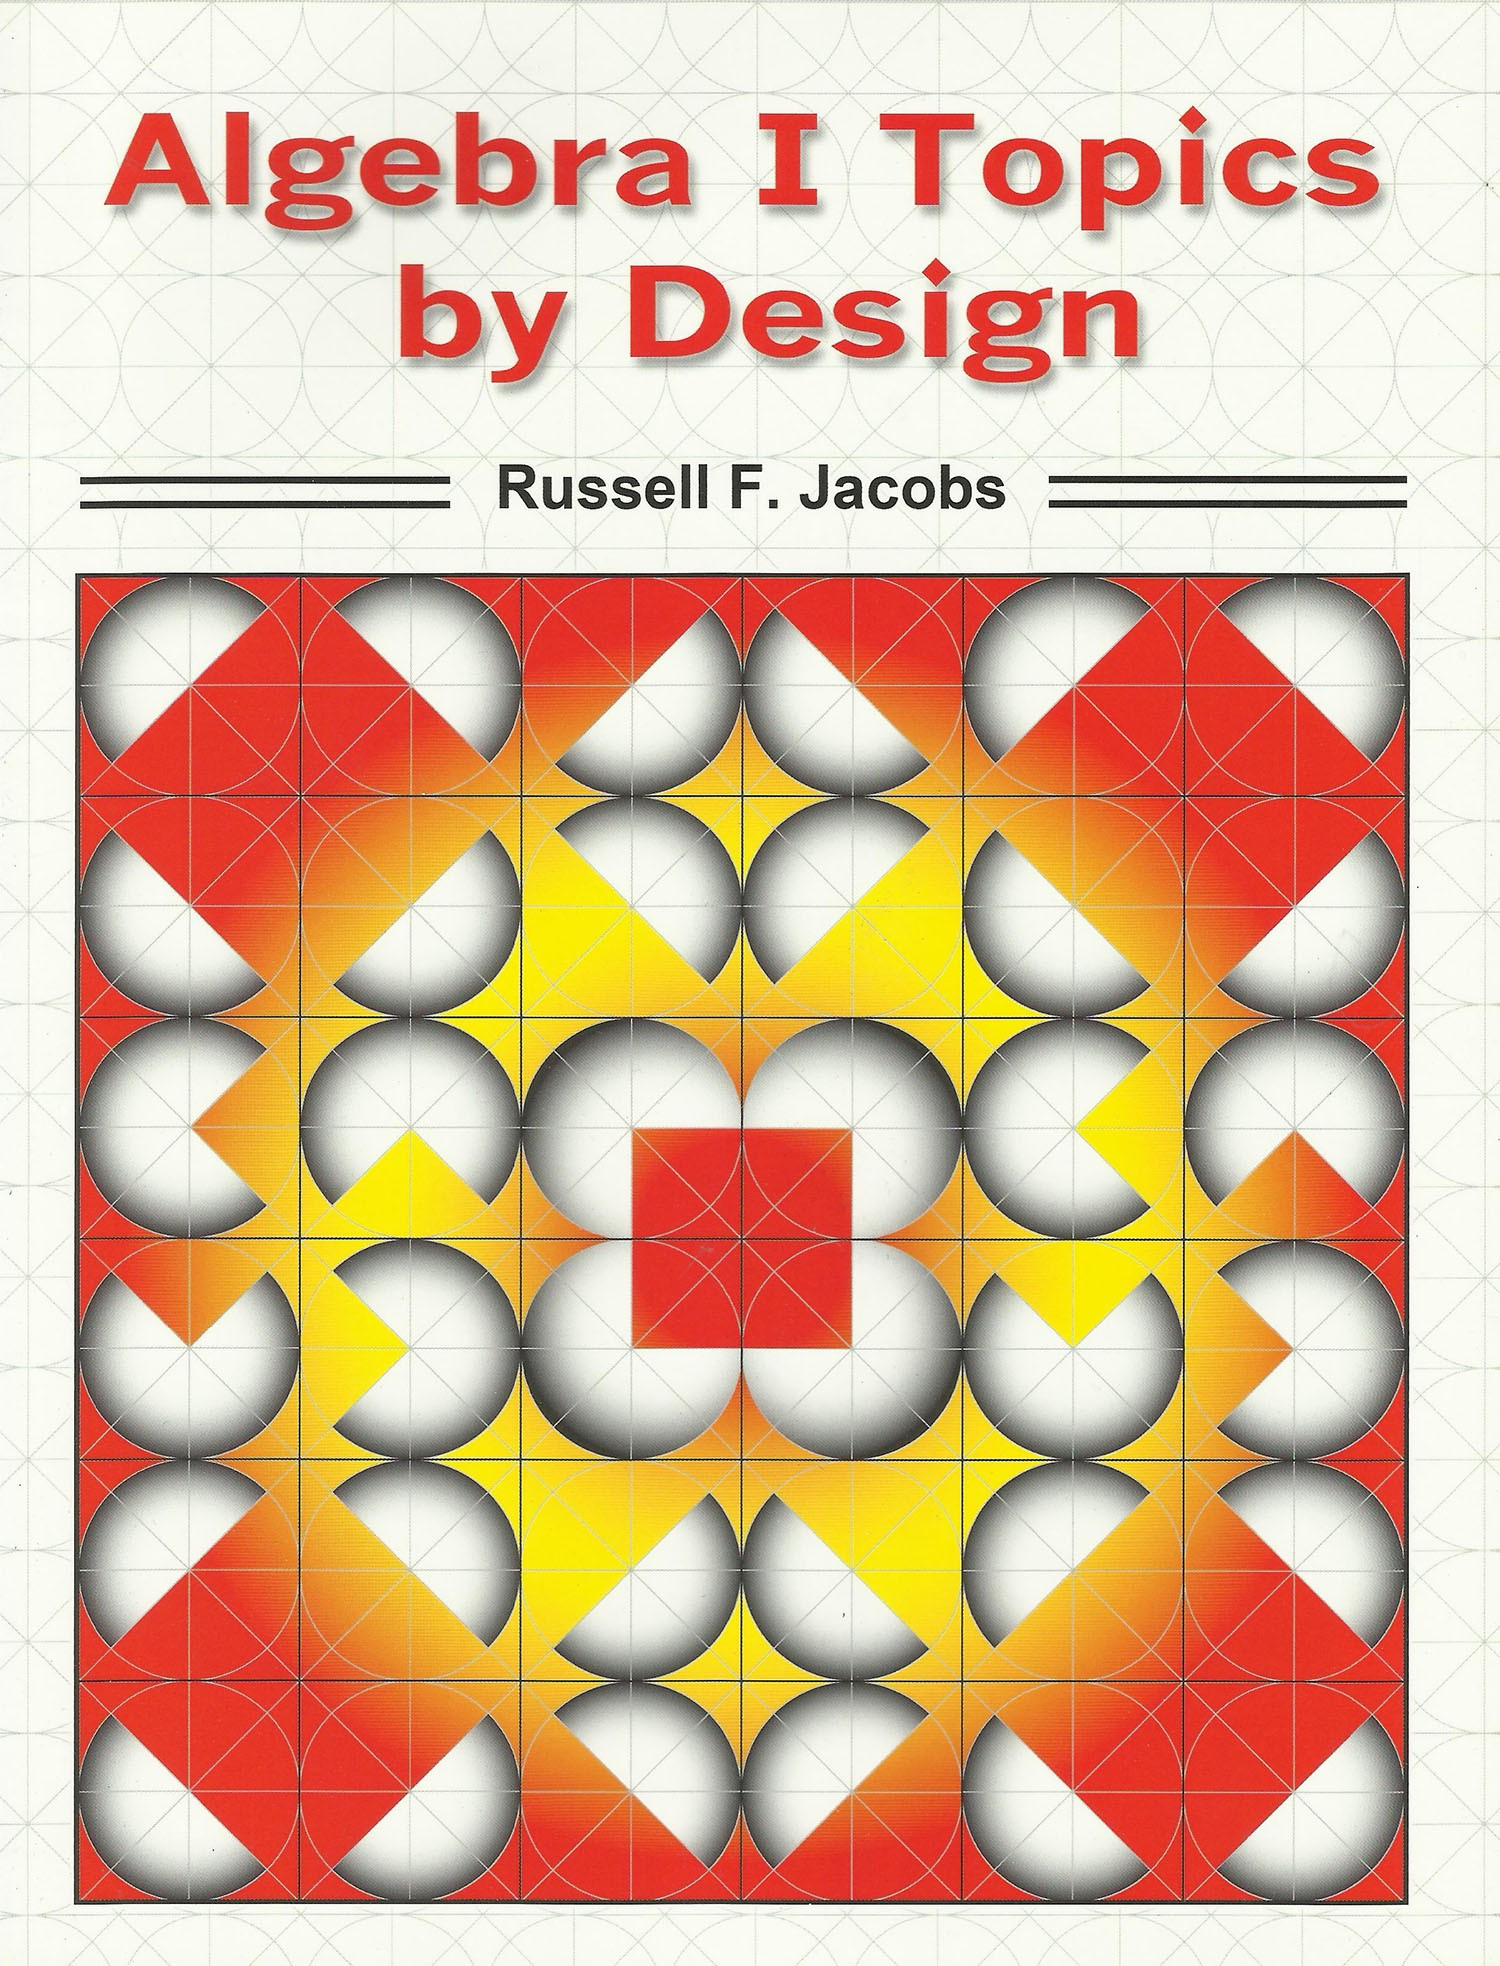 Algebra I Topics by Design